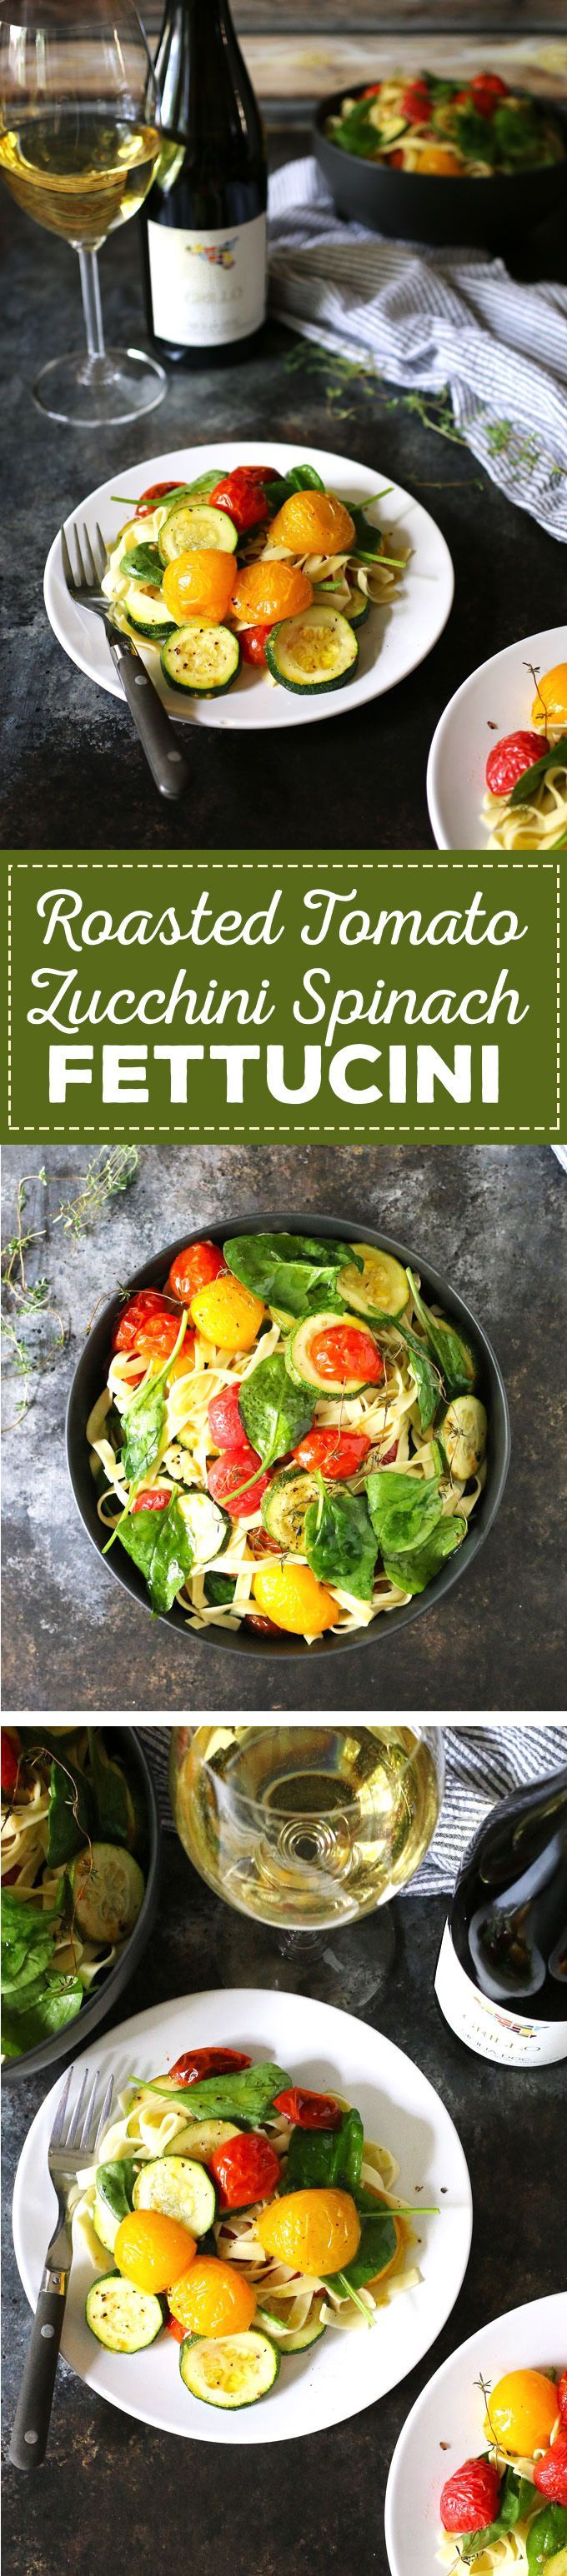 Roasted Tomato Zucchini Spinach Fettucini This roasted tomato zucchini spinach fettucini recipe is the perfect way to use your farmers market purchases and endofsummer ga...